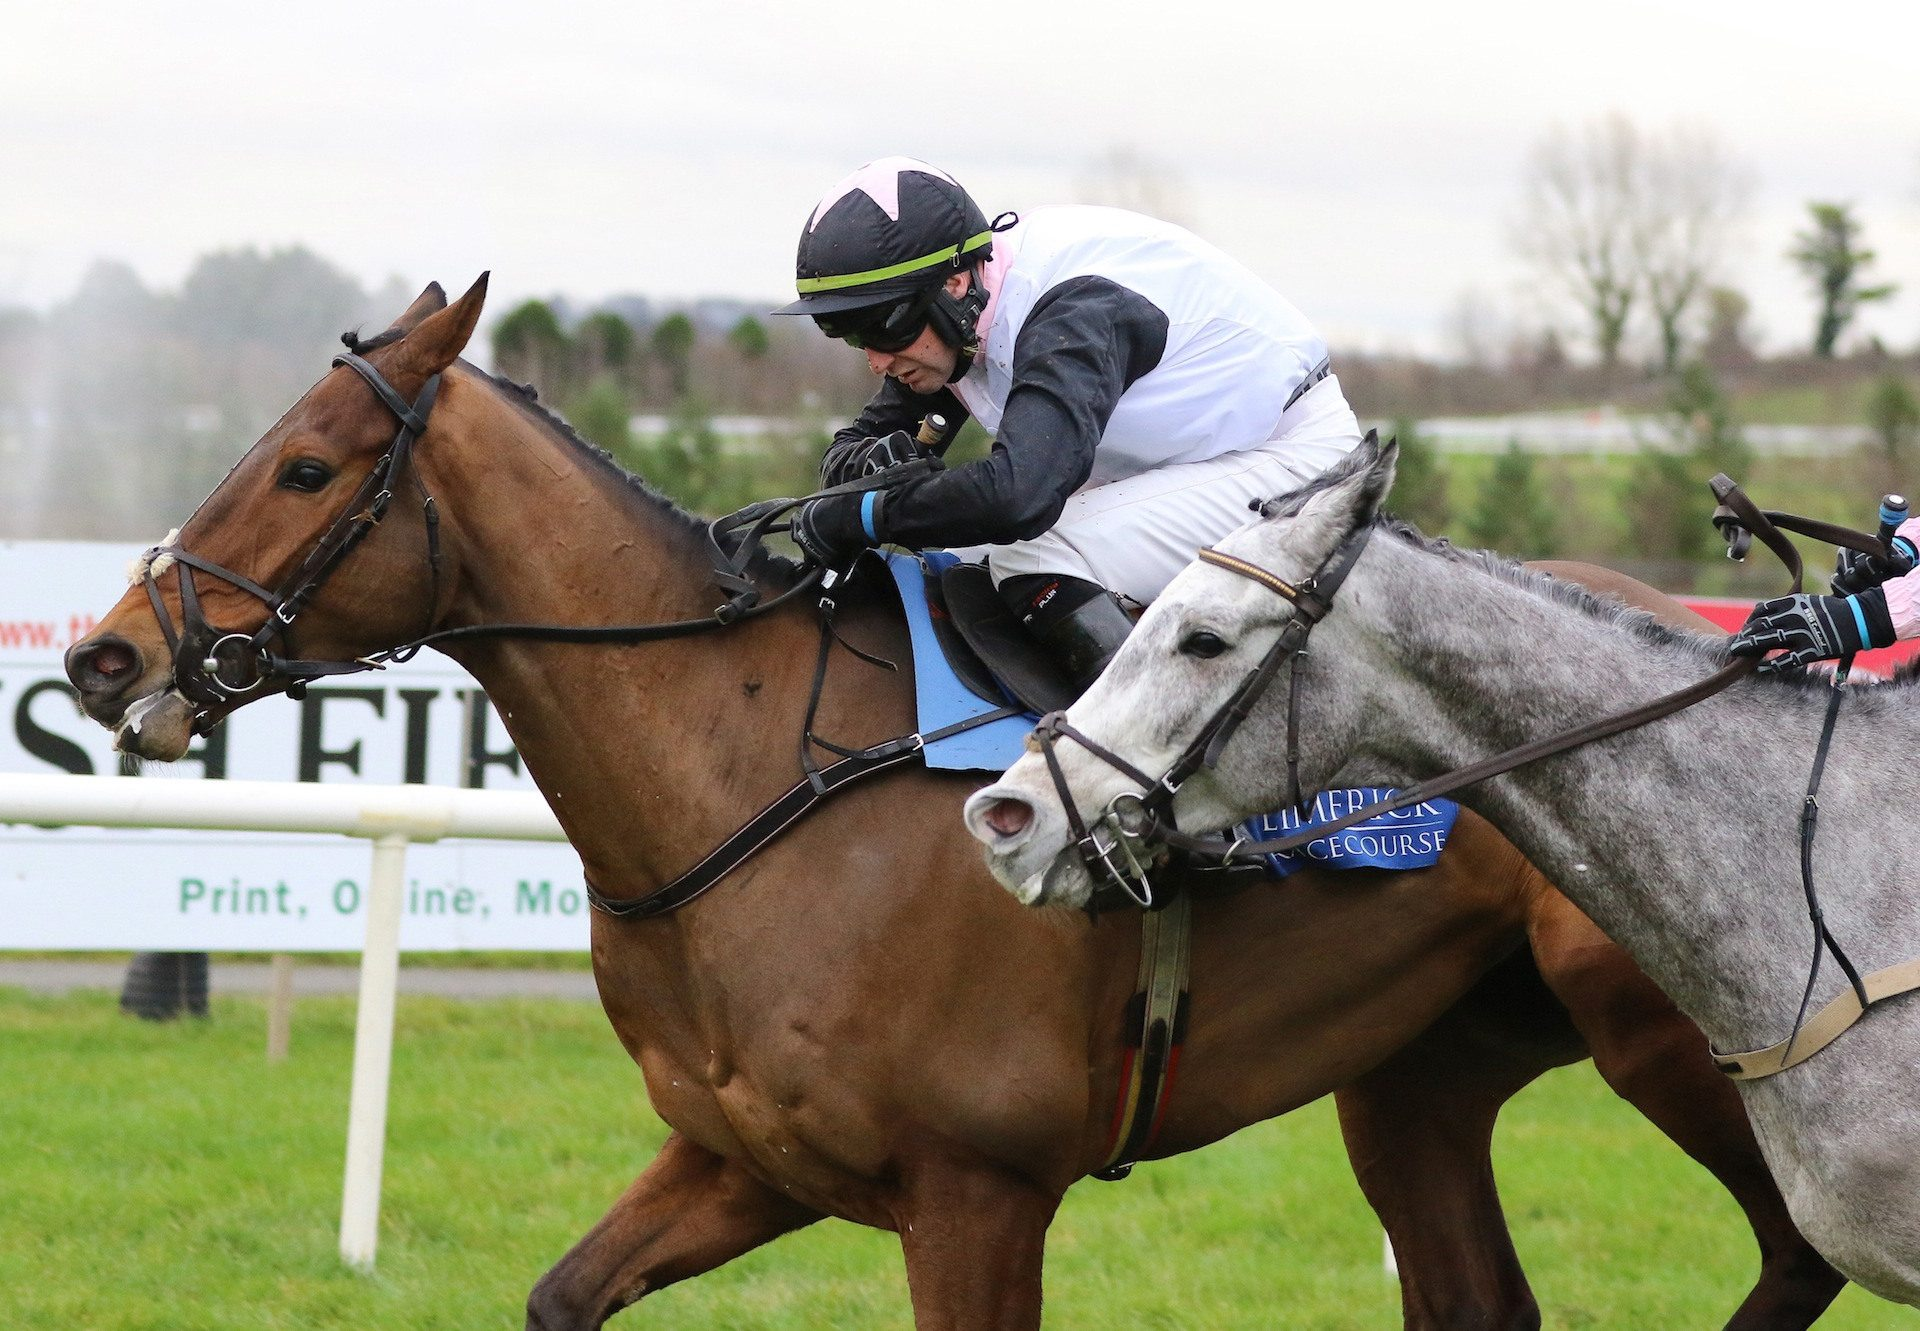 Press Conference (Getaway) Completes A Maiden Hurdle Double For Getaway